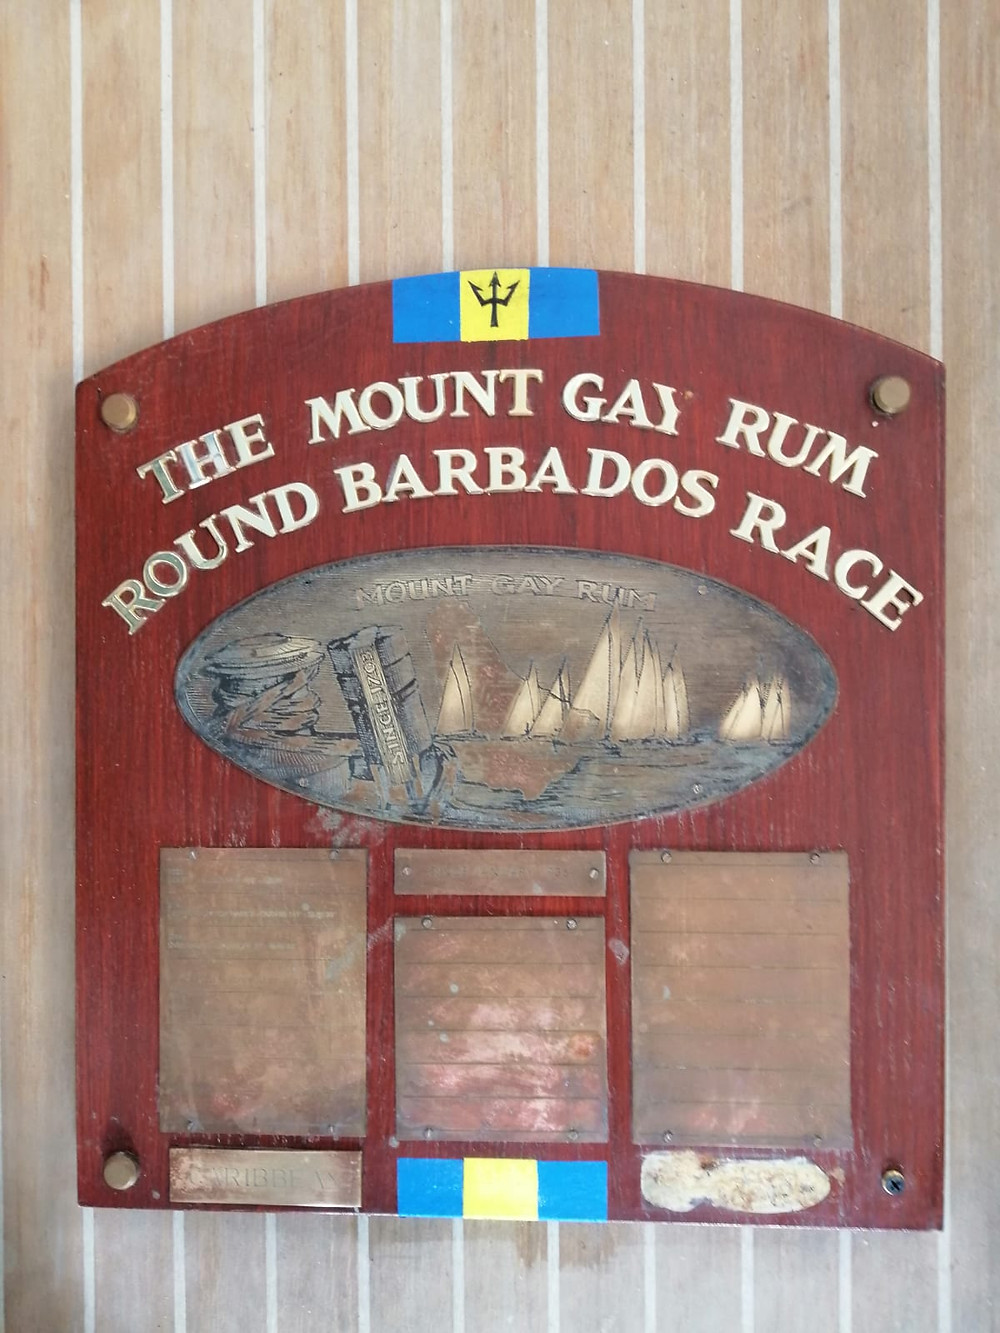 The spoils of victory go to Ineffable: Round Barbados Race 2019.